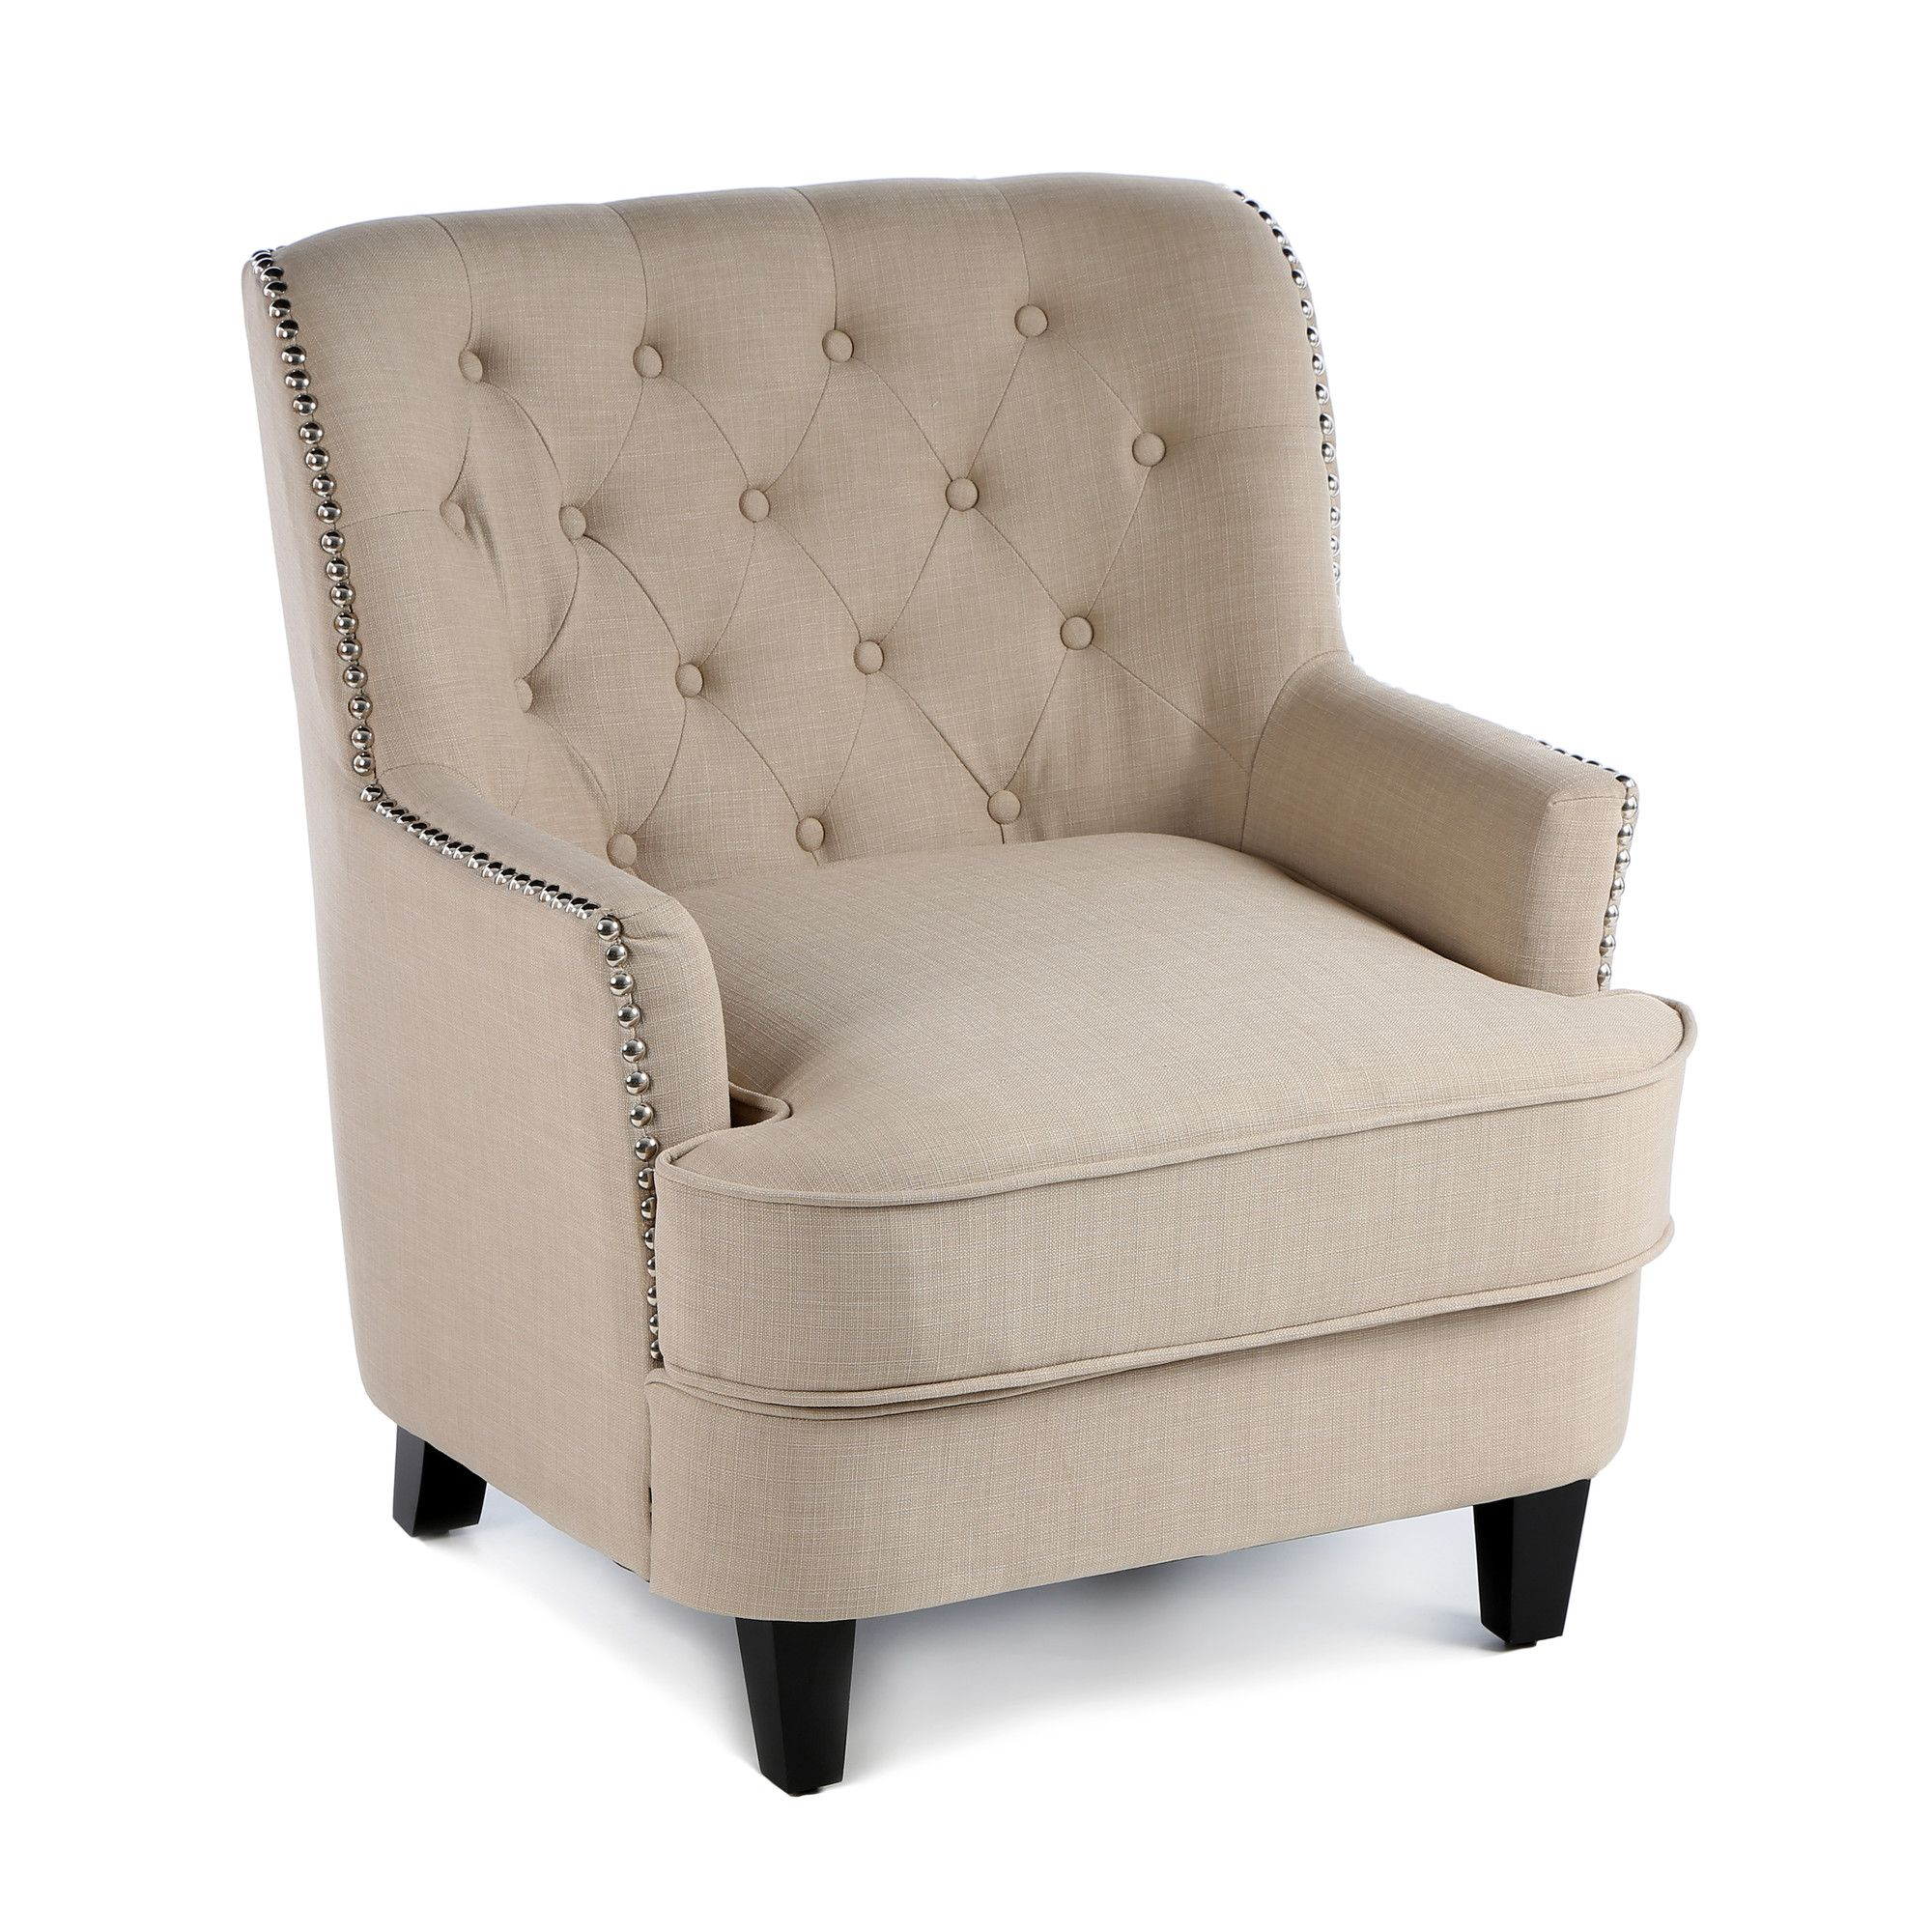 Castleton Home Middleton Tufted Club Chair U0026 Reviews | Wayfair $279.00